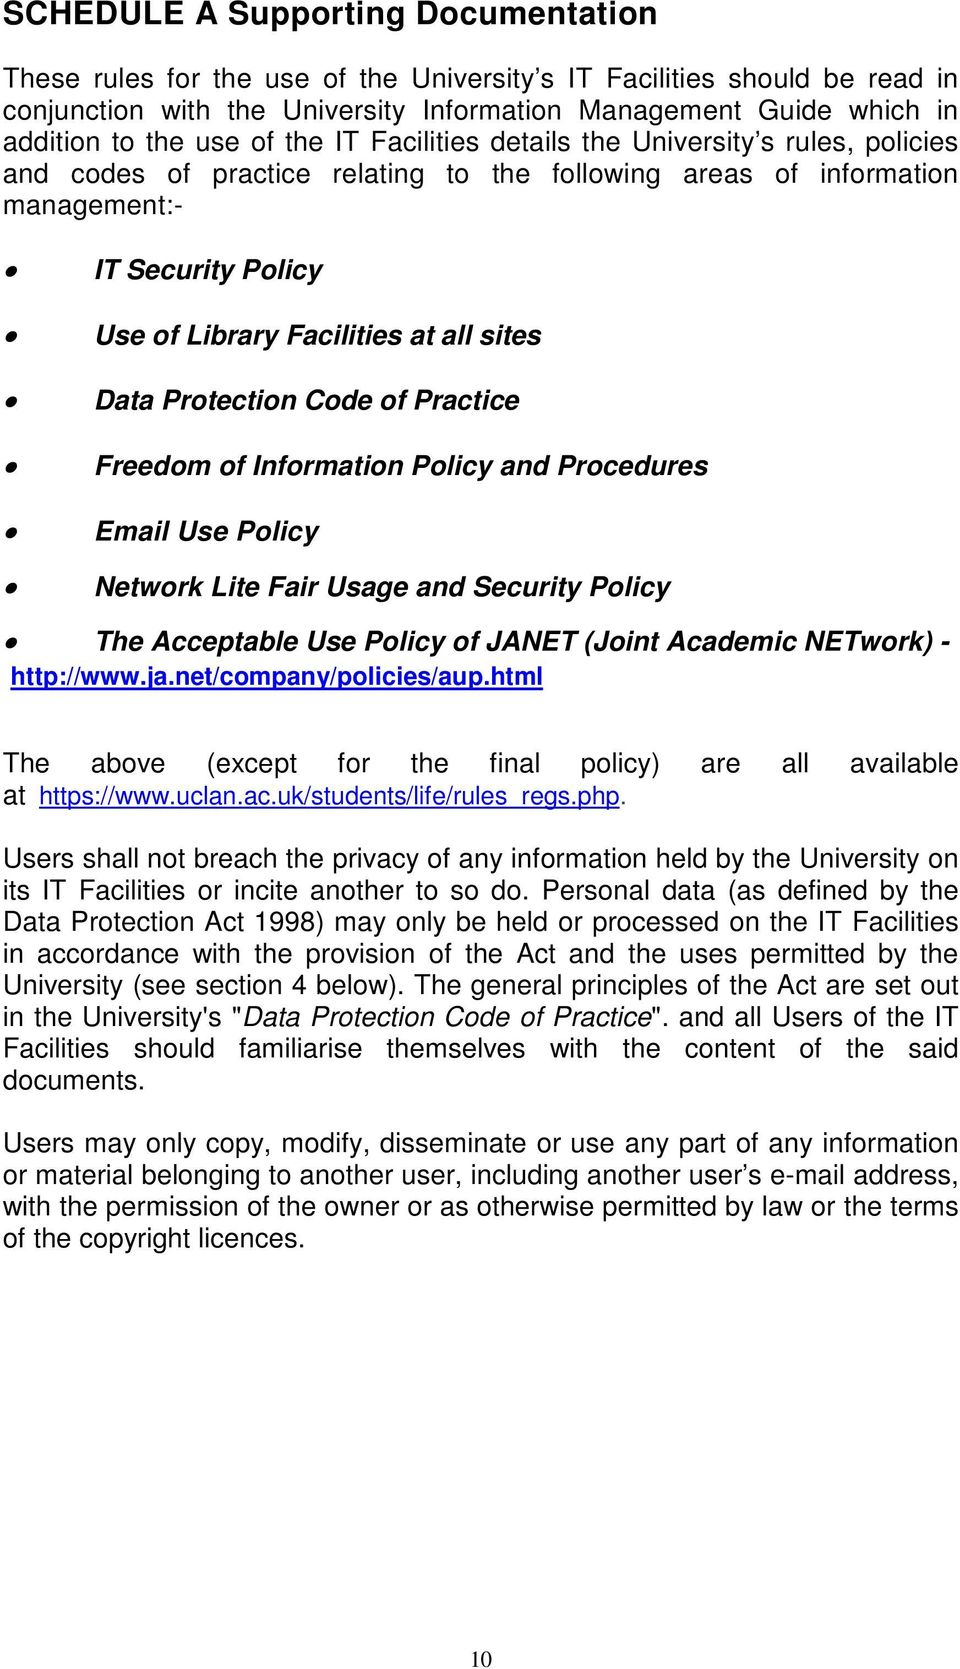 sites Data Protection Code of Practice Freedom of Information Policy and Procedures Email Use Policy Network Lite Fair Usage and Security Policy The Acceptable Use Policy of JANET (Joint Academic